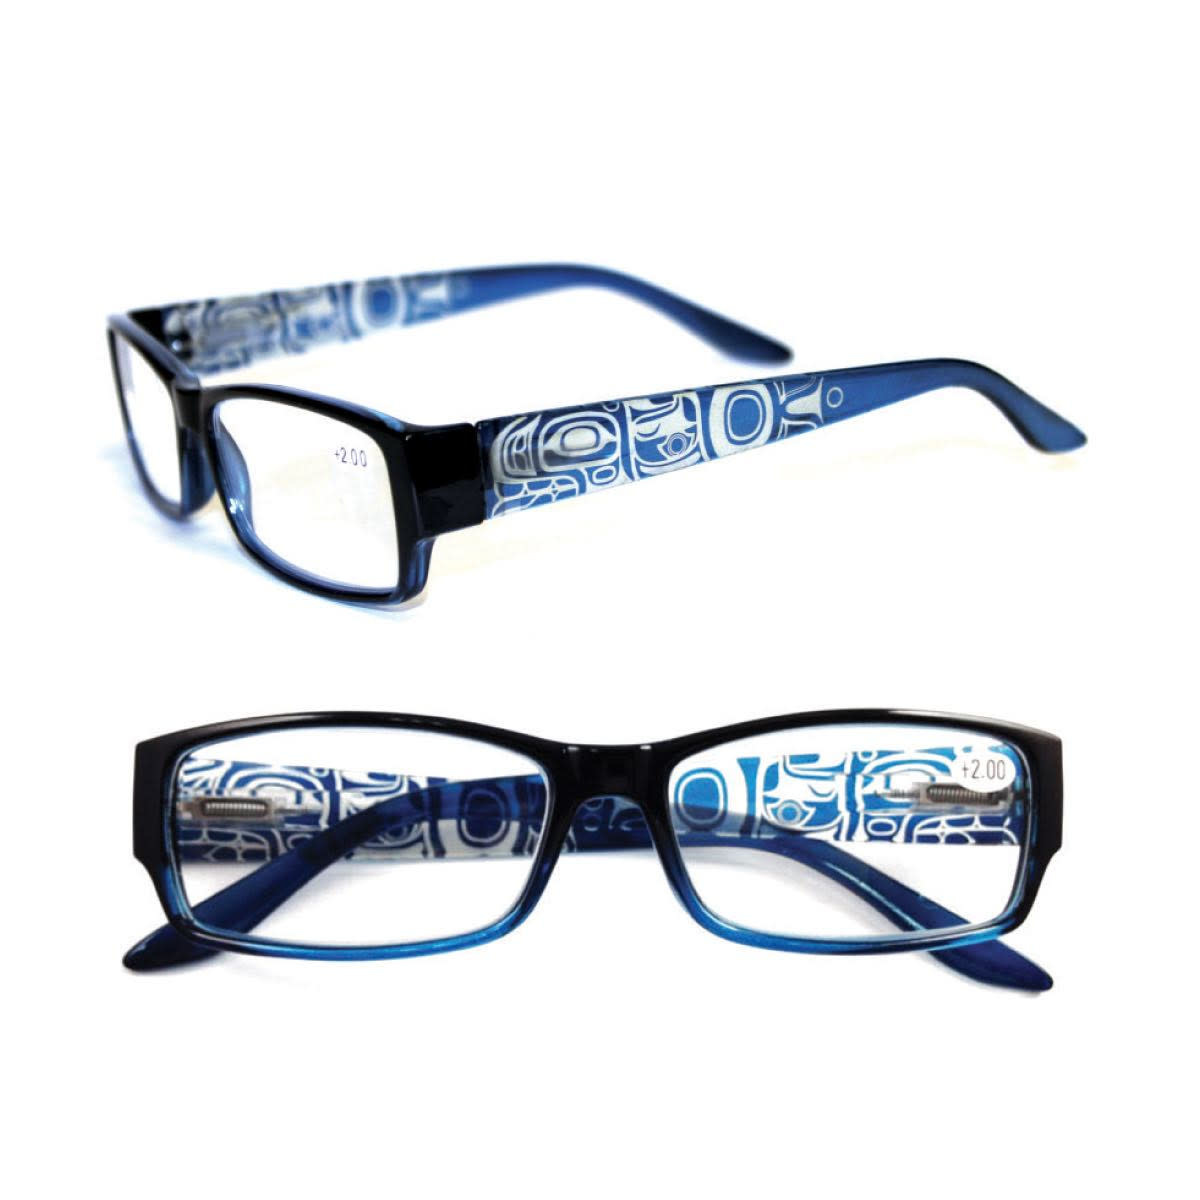 Adult Reading Glasses-6